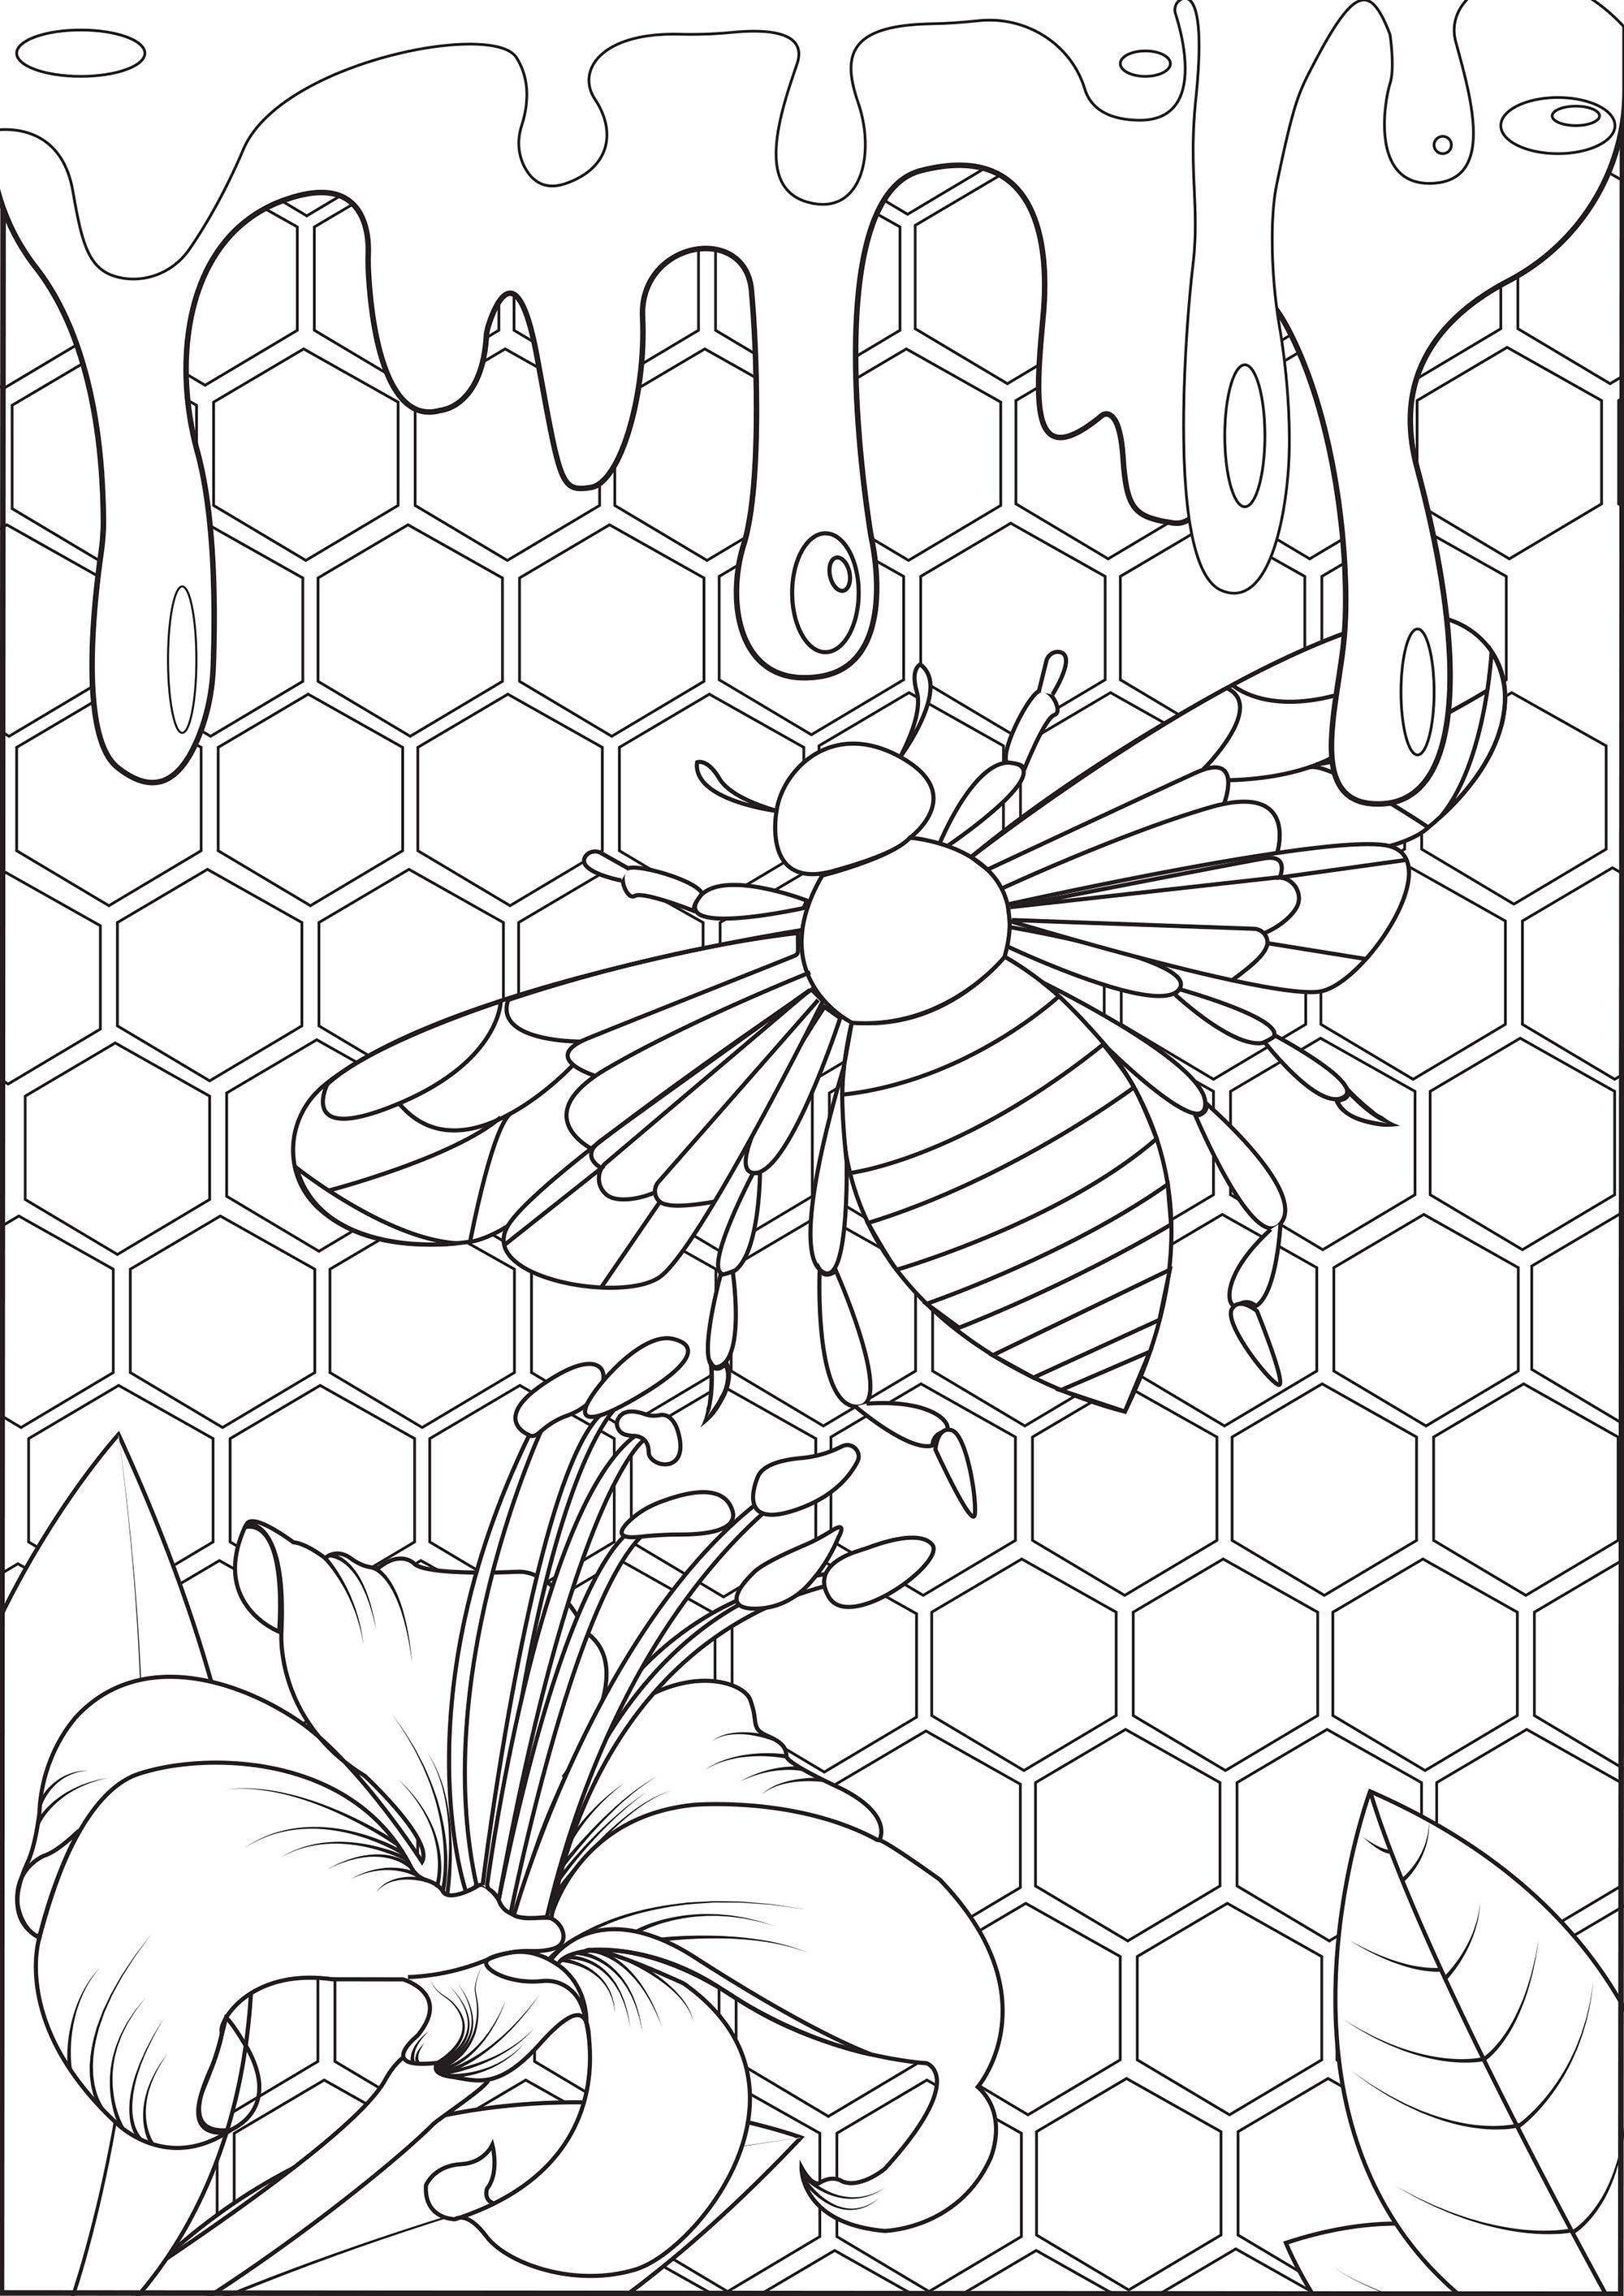 Bee And Honey Get Into The Hive And Taste The Honey From The Gallery Insects Artist A Bee Coloring Pages Insect Coloring Pages Mandala Coloring Pages